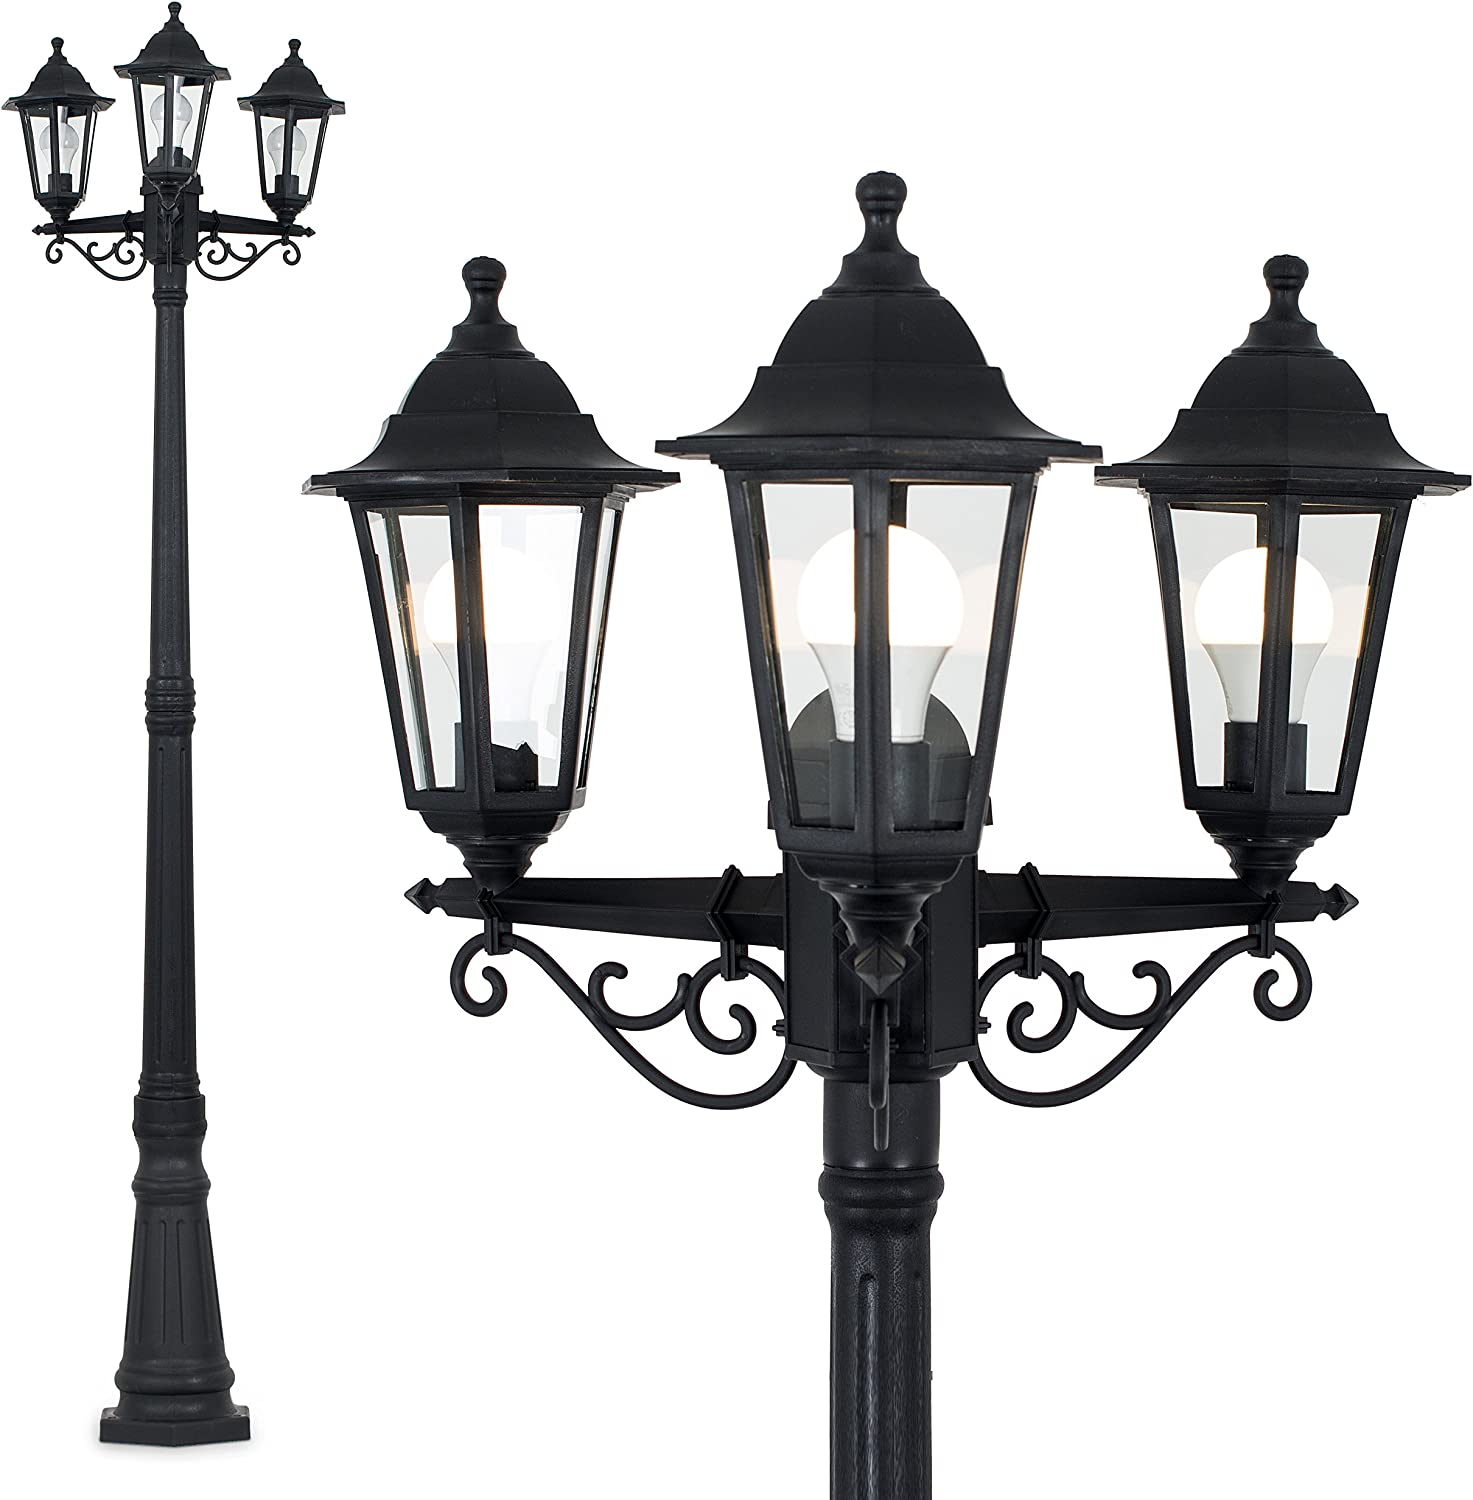 SOLAR POWERED LED VICTORIAN DOUBLE LANTERN GARDEN LAMP POST 1.8M BLACK